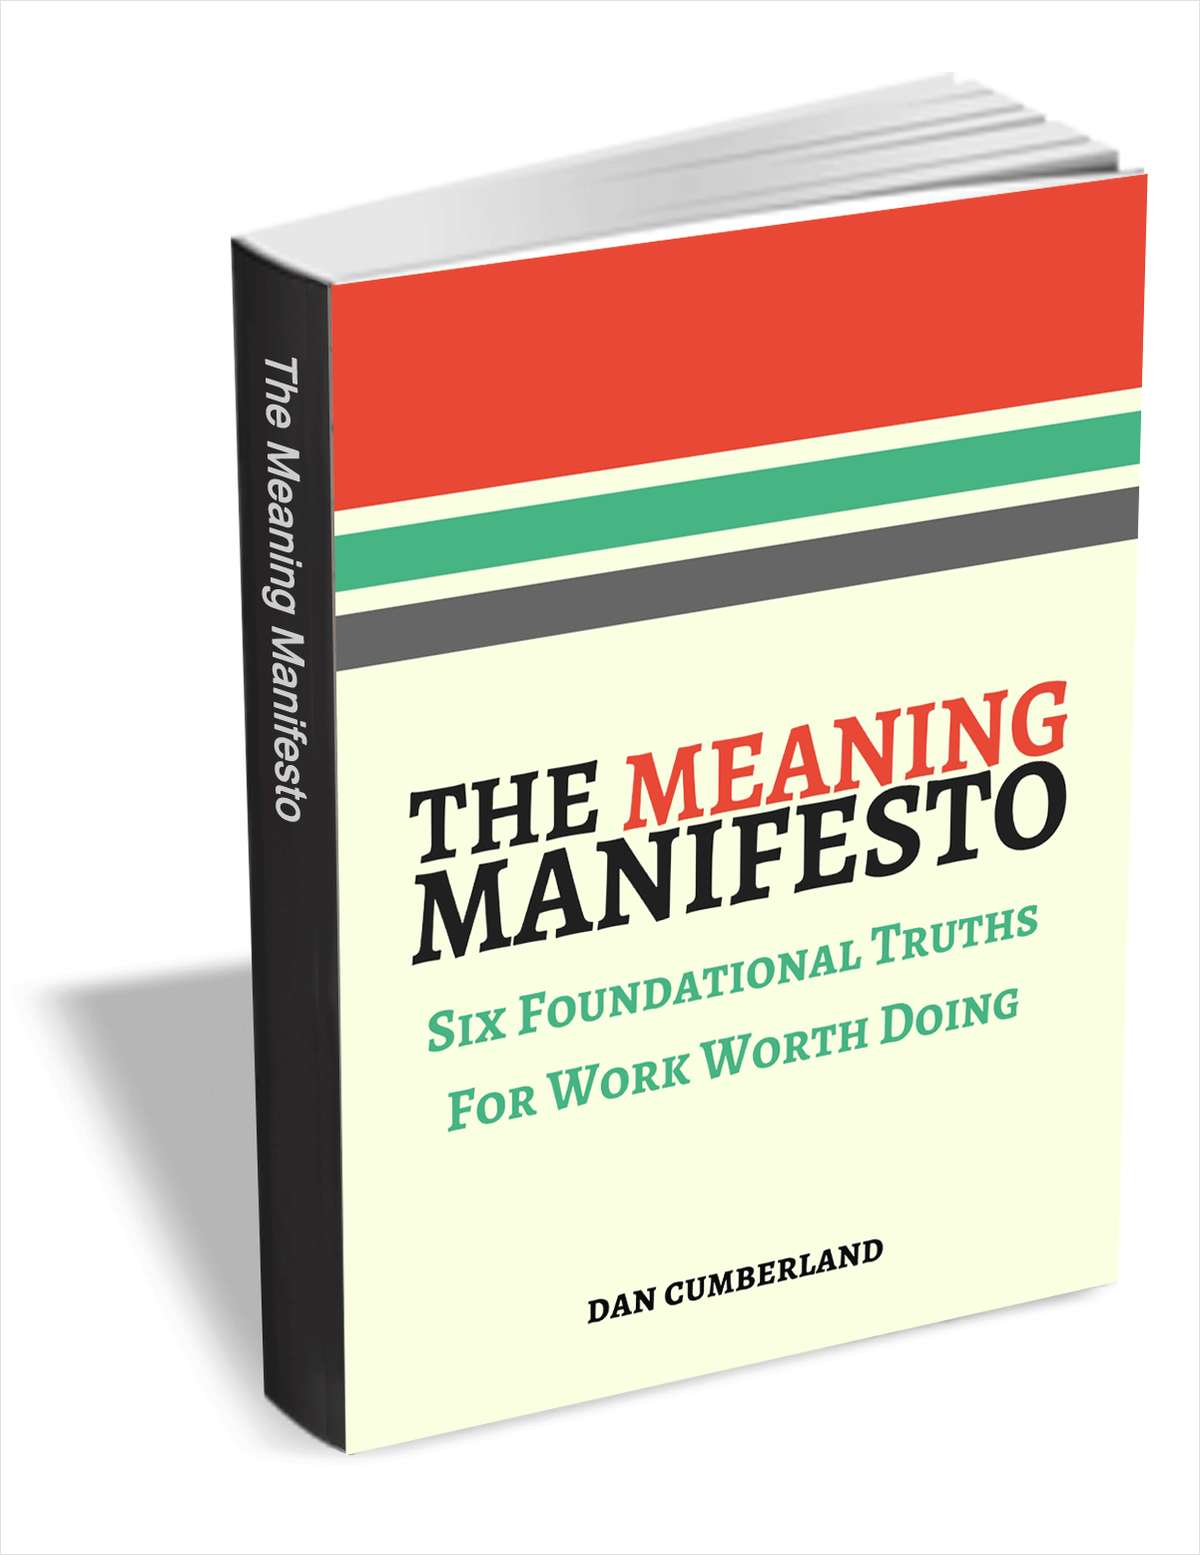 The Meaning Manifesto - Six Foundational Truths for Work Worth Doing